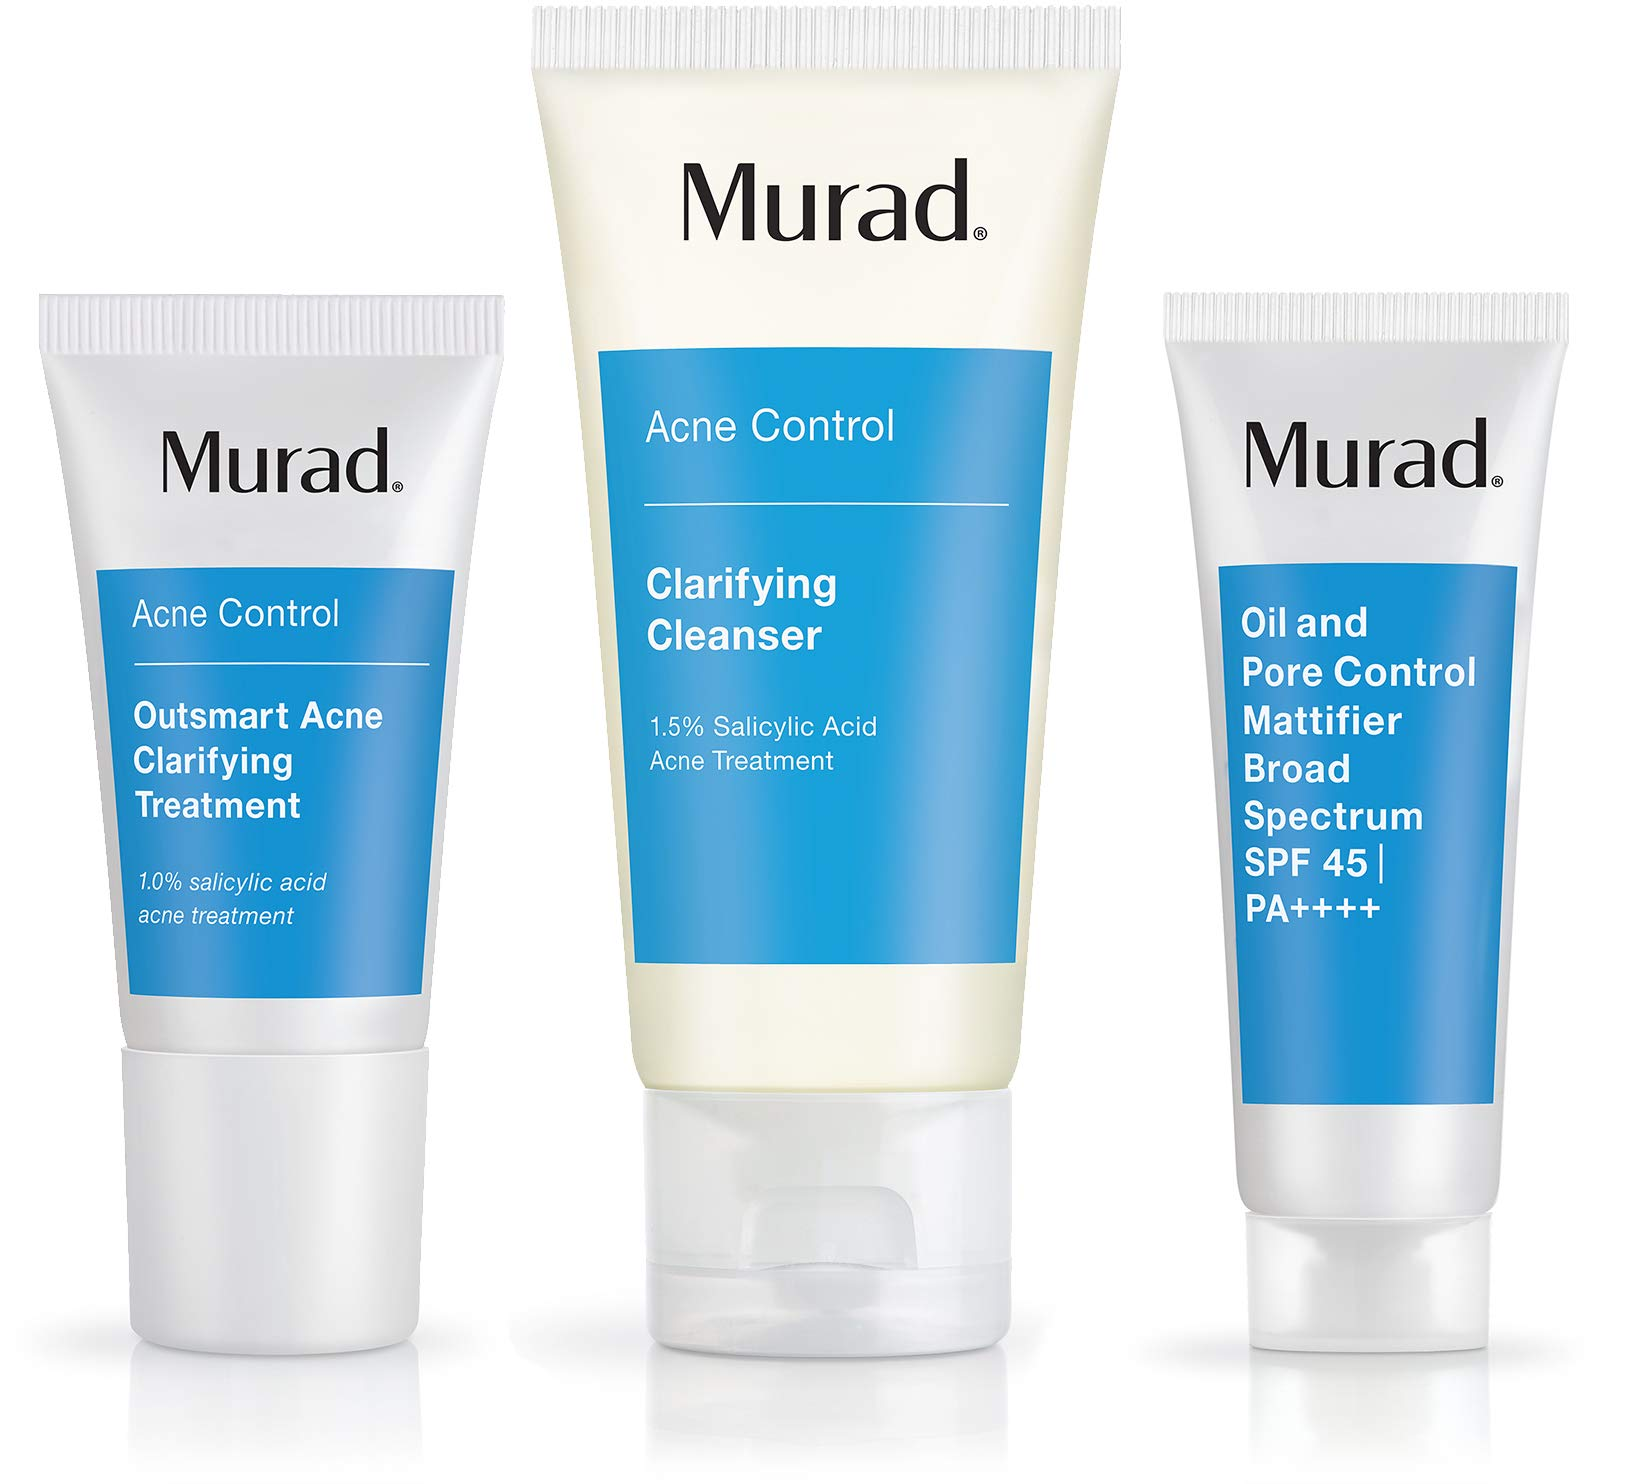 Murad Get Over Zit Kit - Acne Control Regimen | Clarifying Cleanser, Treatment and SPF | 3 Piece Kit by Murad